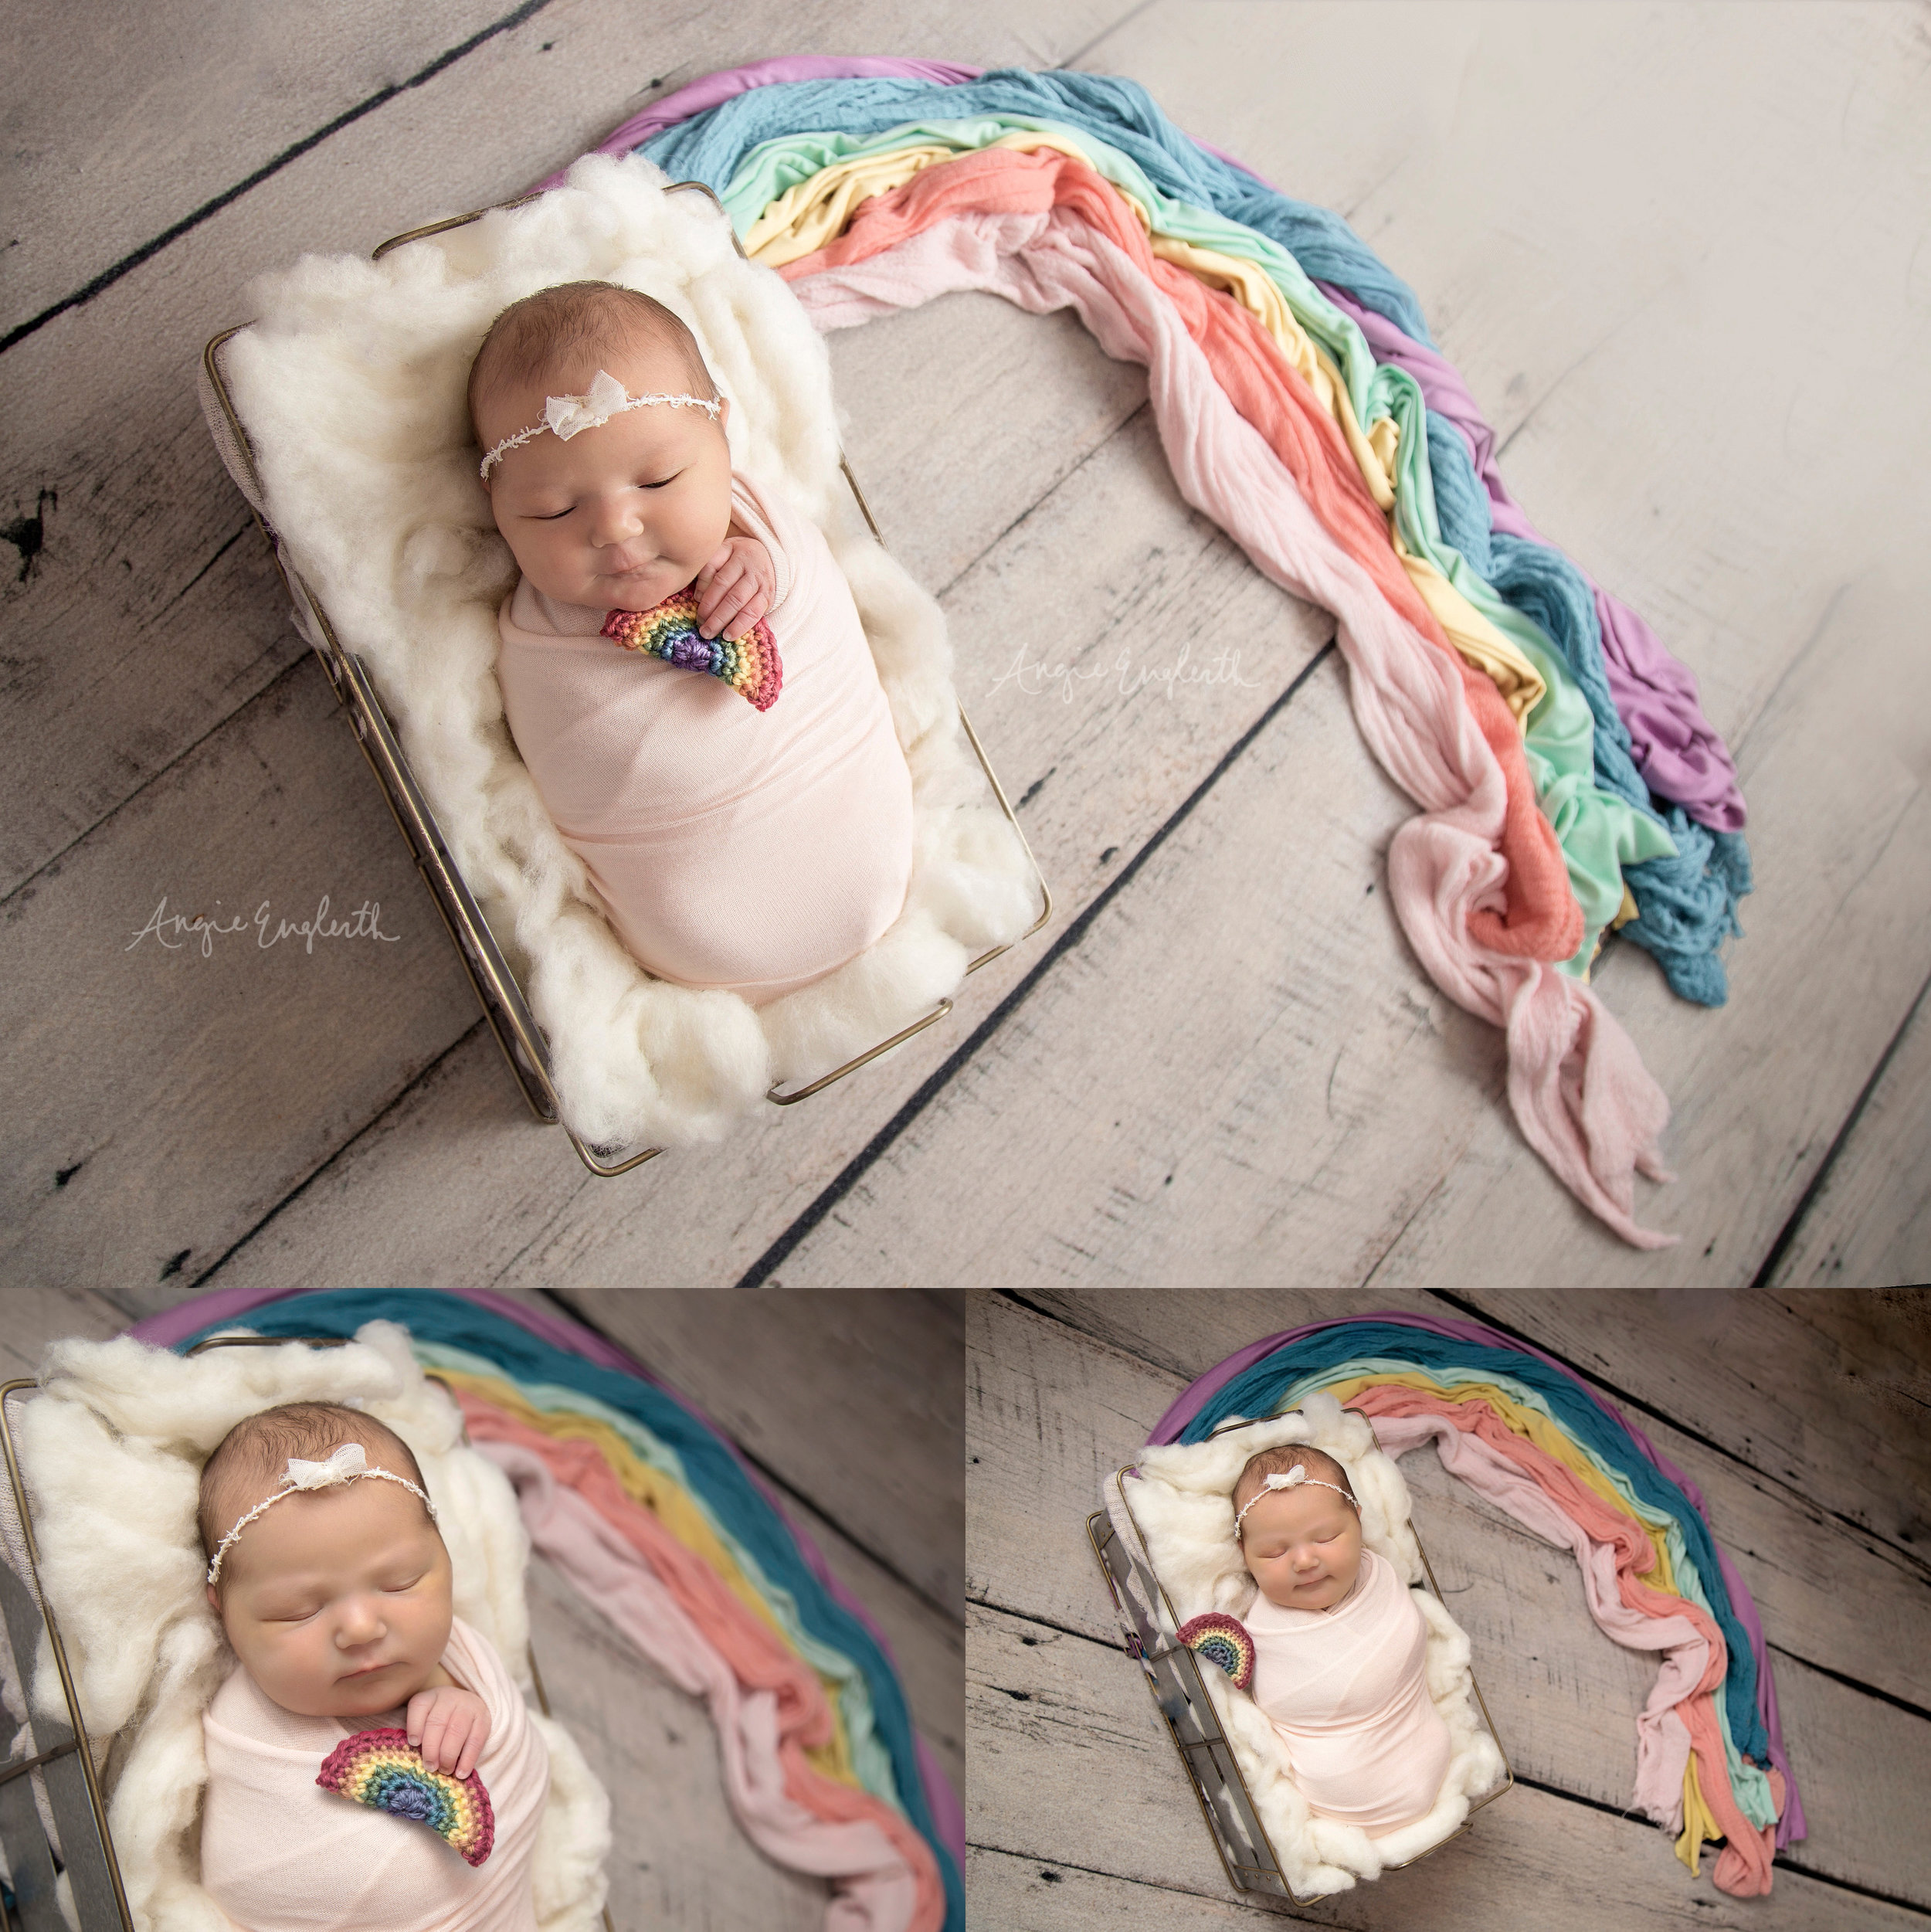 lancaster_newborn_photographer_angie_englerth_central_pa_004.jpg